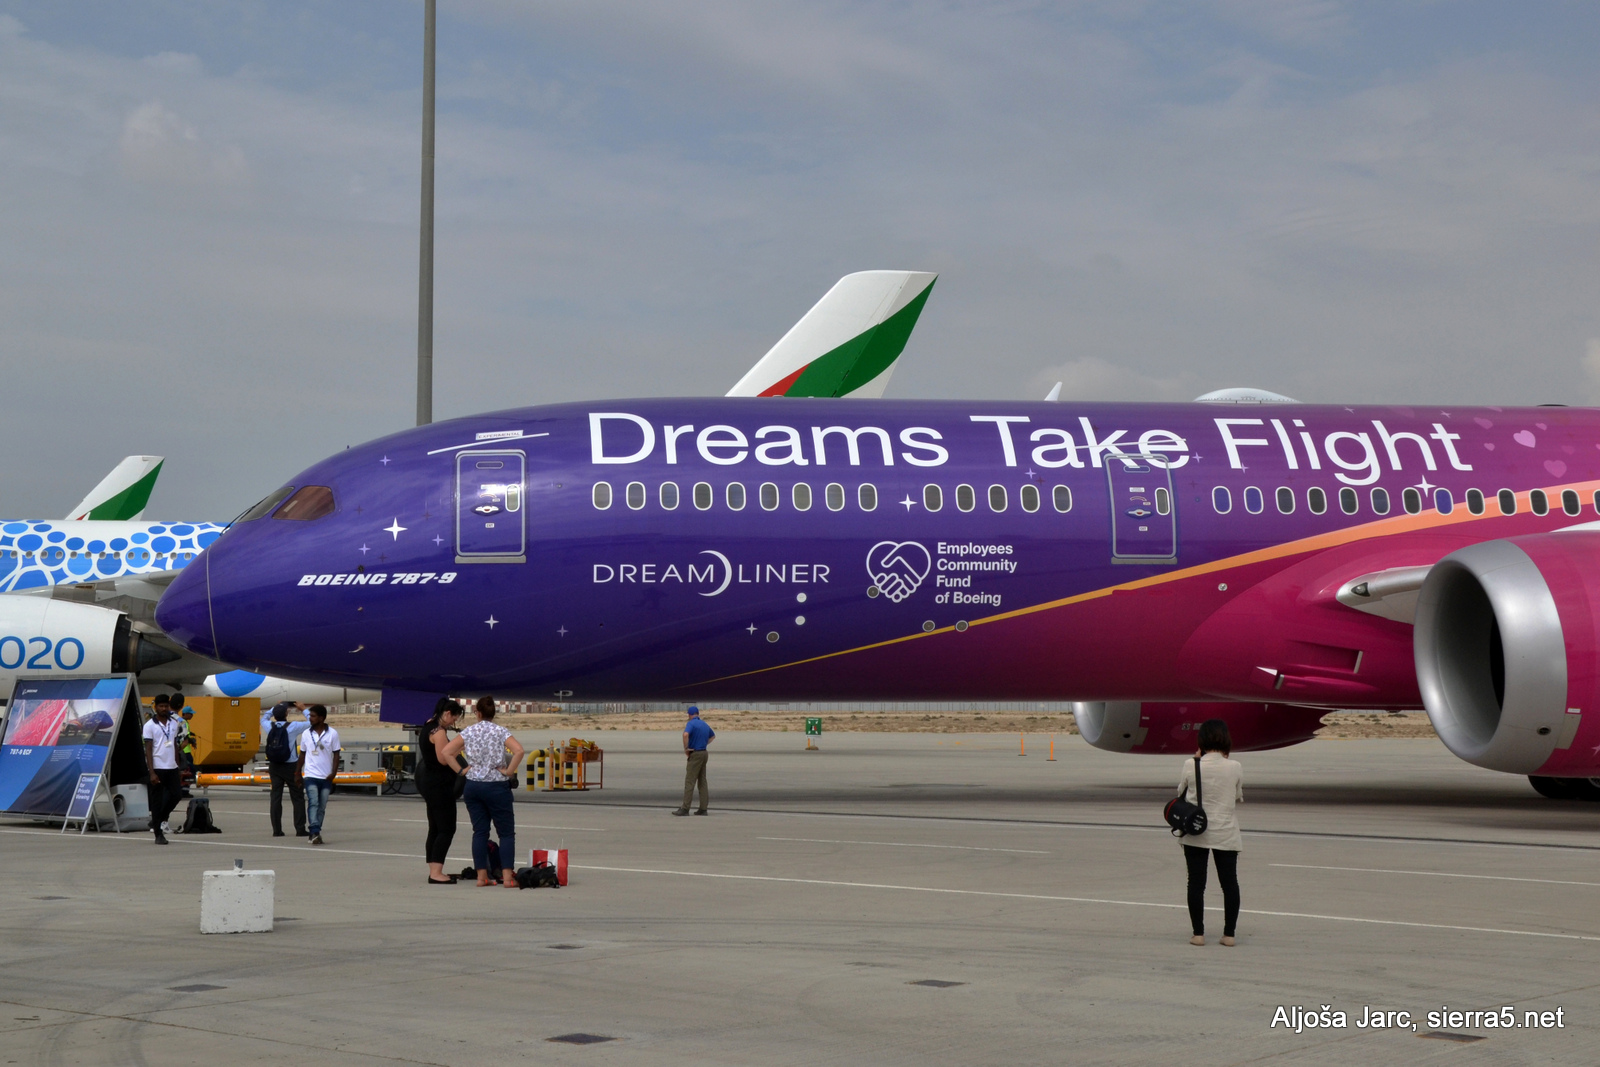 B787 dreams take flight